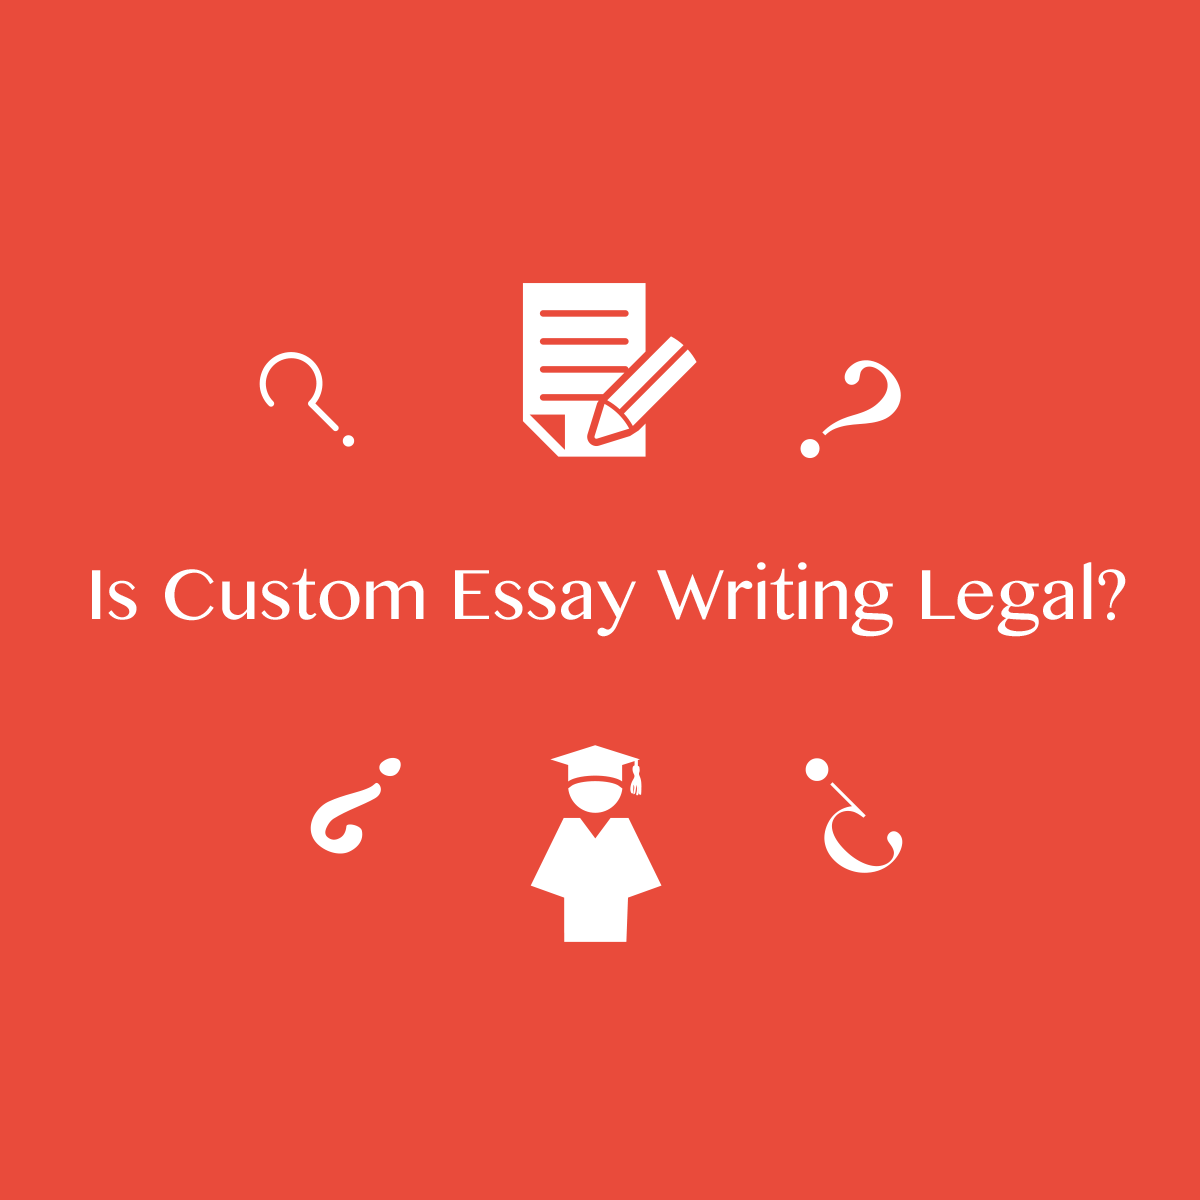 essay writing service toronto Custom essay is a premium custom essay writing service with over 20 years of experience providing quality essays by expert writers to satisfied clients.